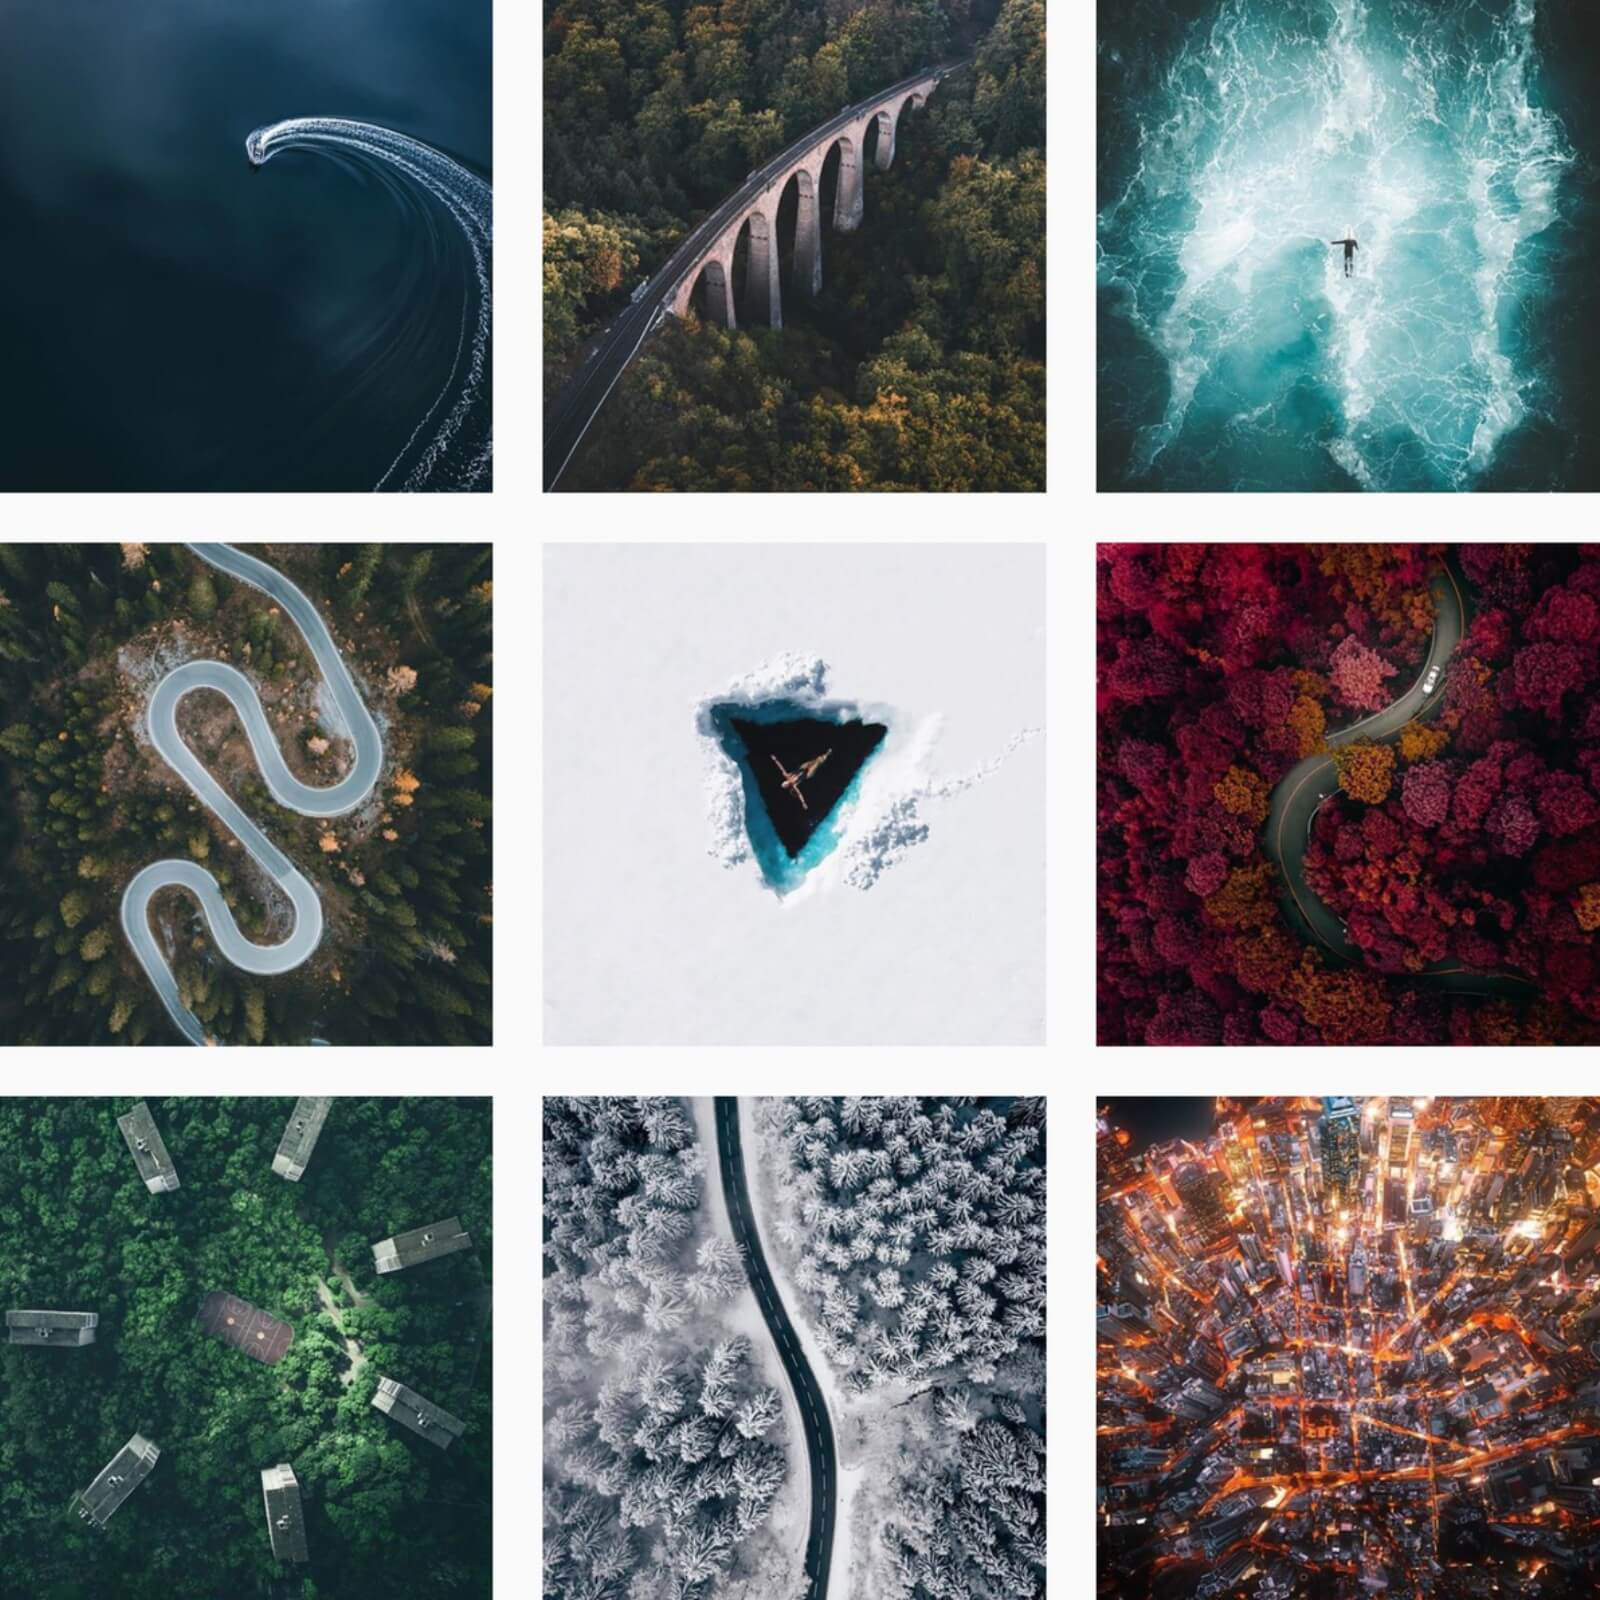 @dronegrids top down photography